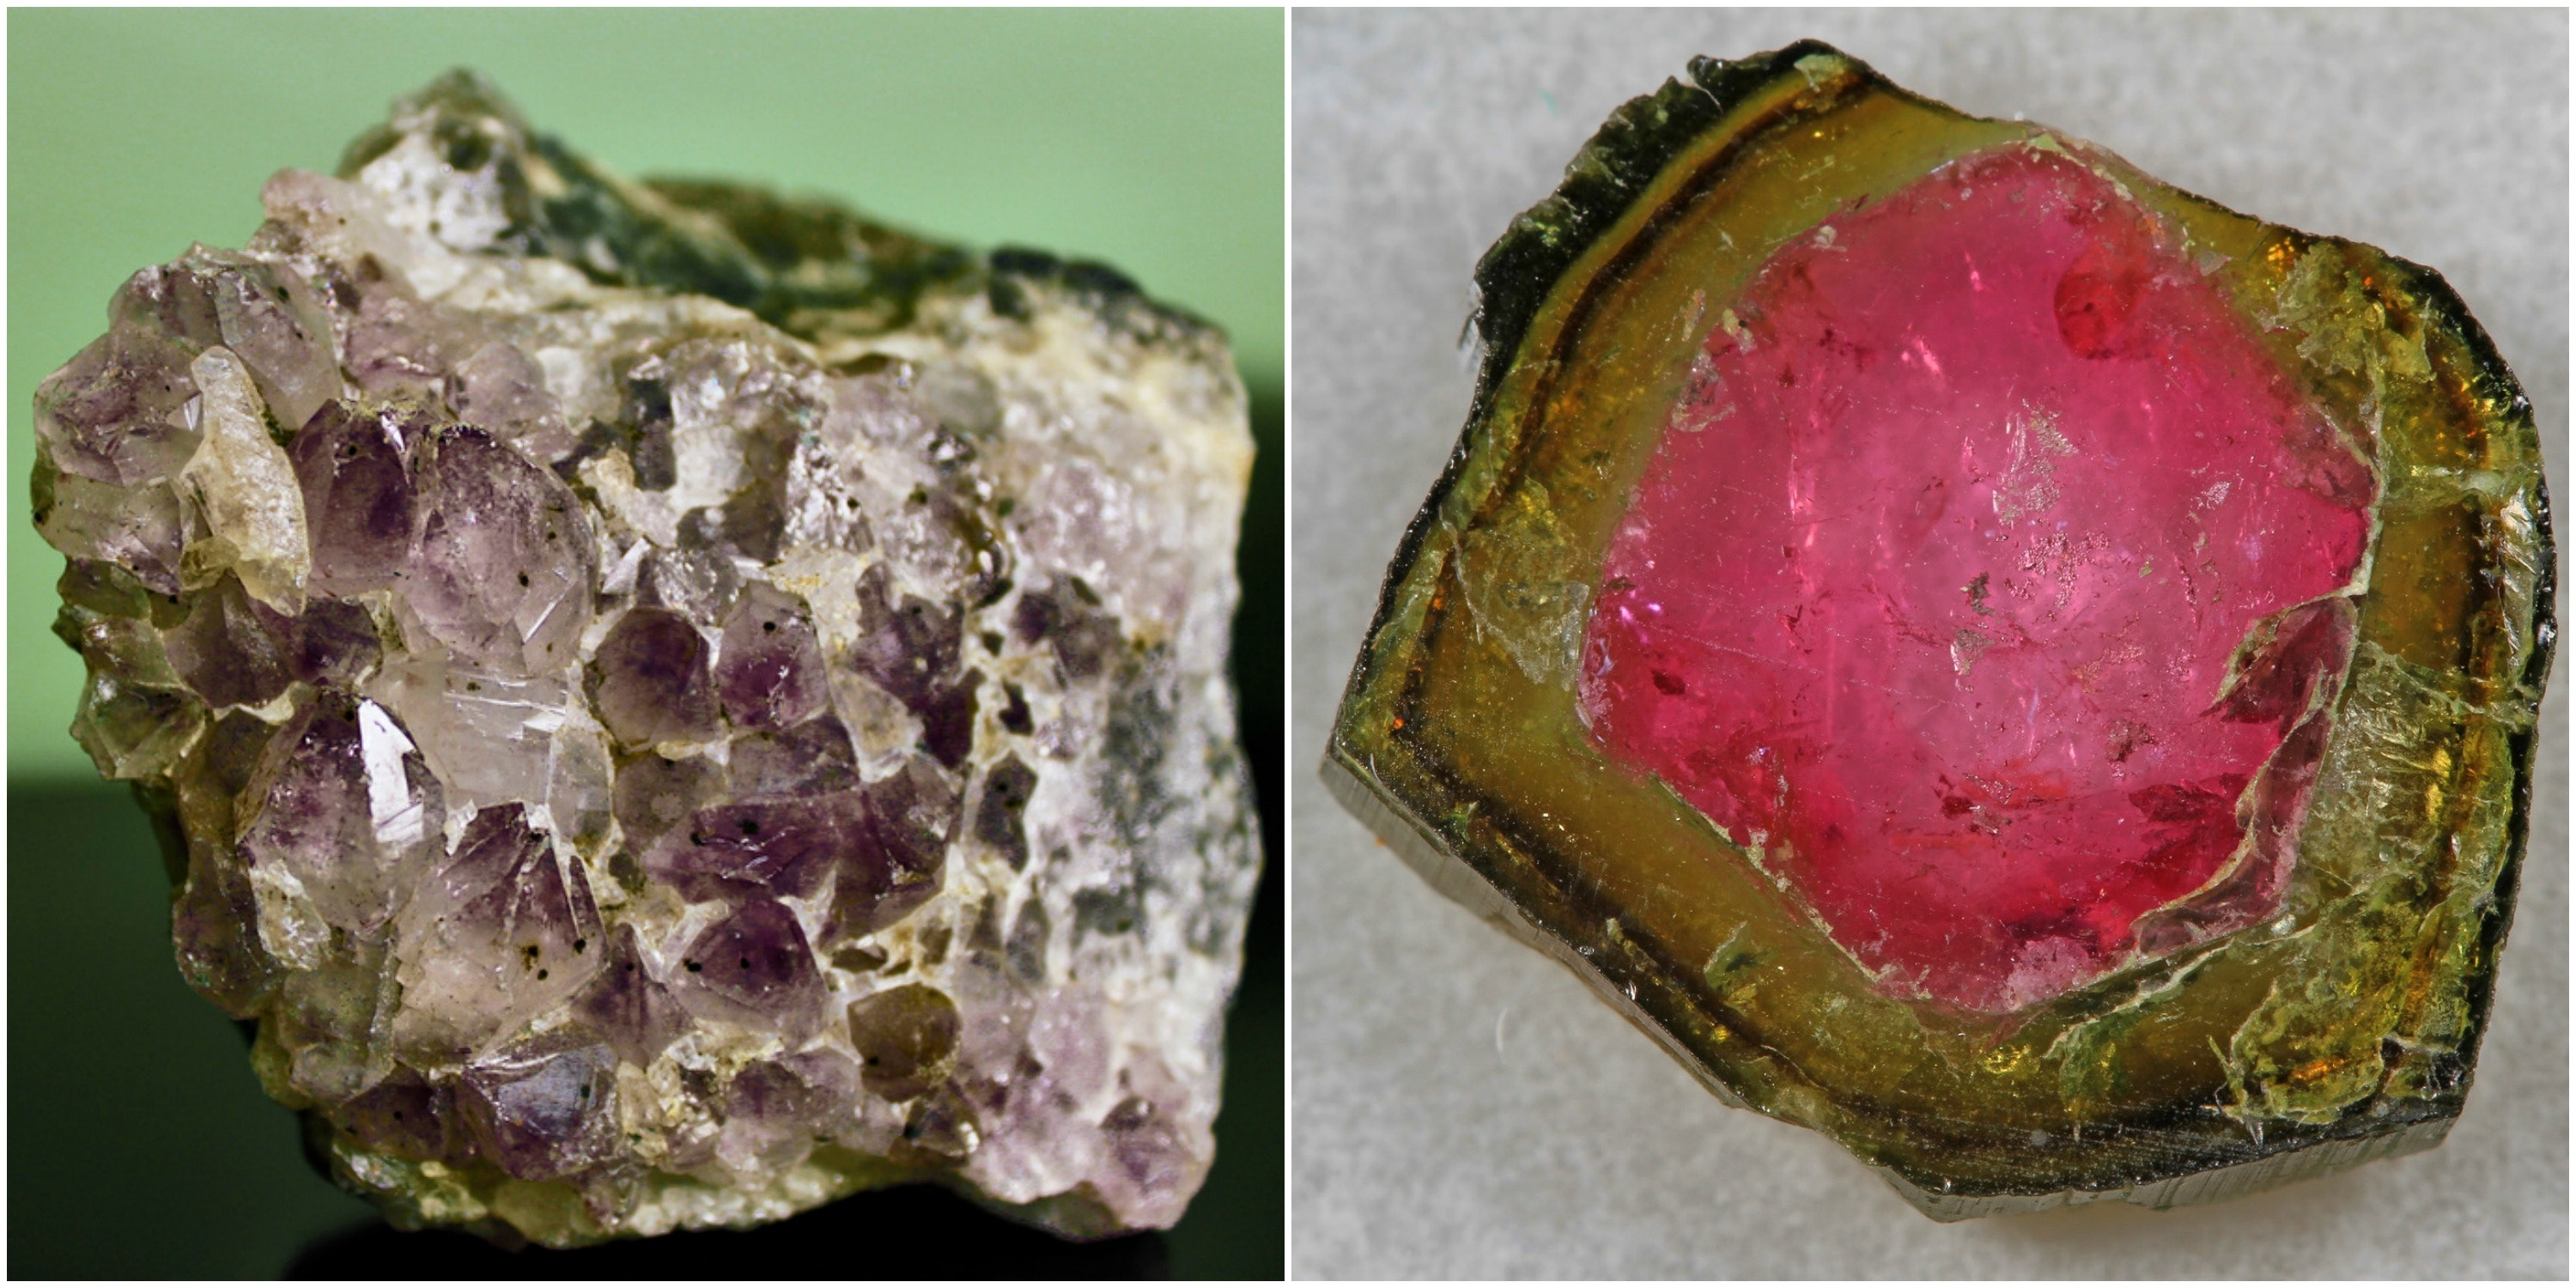 Amethyst (left) andWatermelon Tourmaline (right).